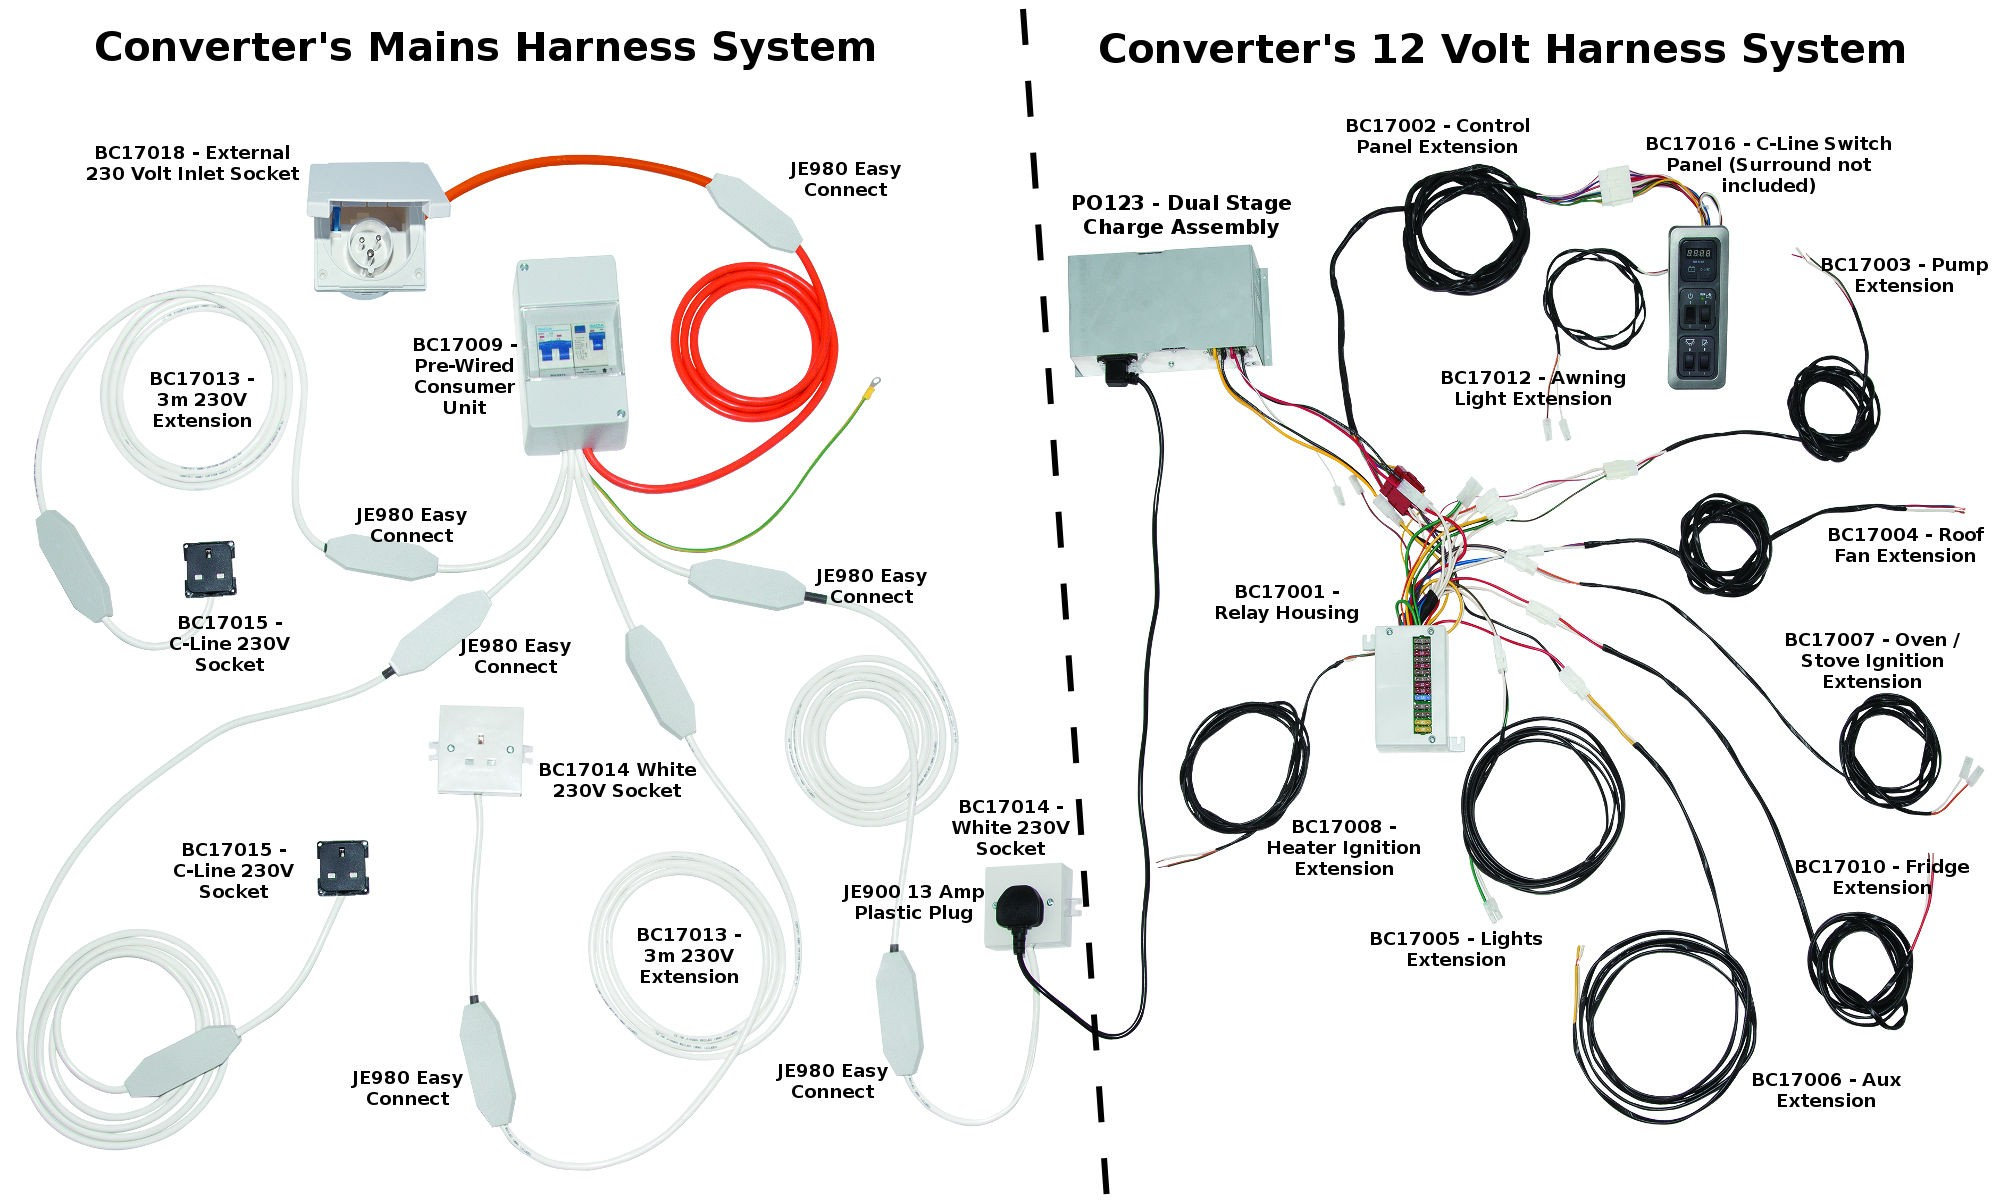 hight resolution of wiring harness as well as 12 volt 30 relay also rv water pump wiring rv 12 volt wire harness